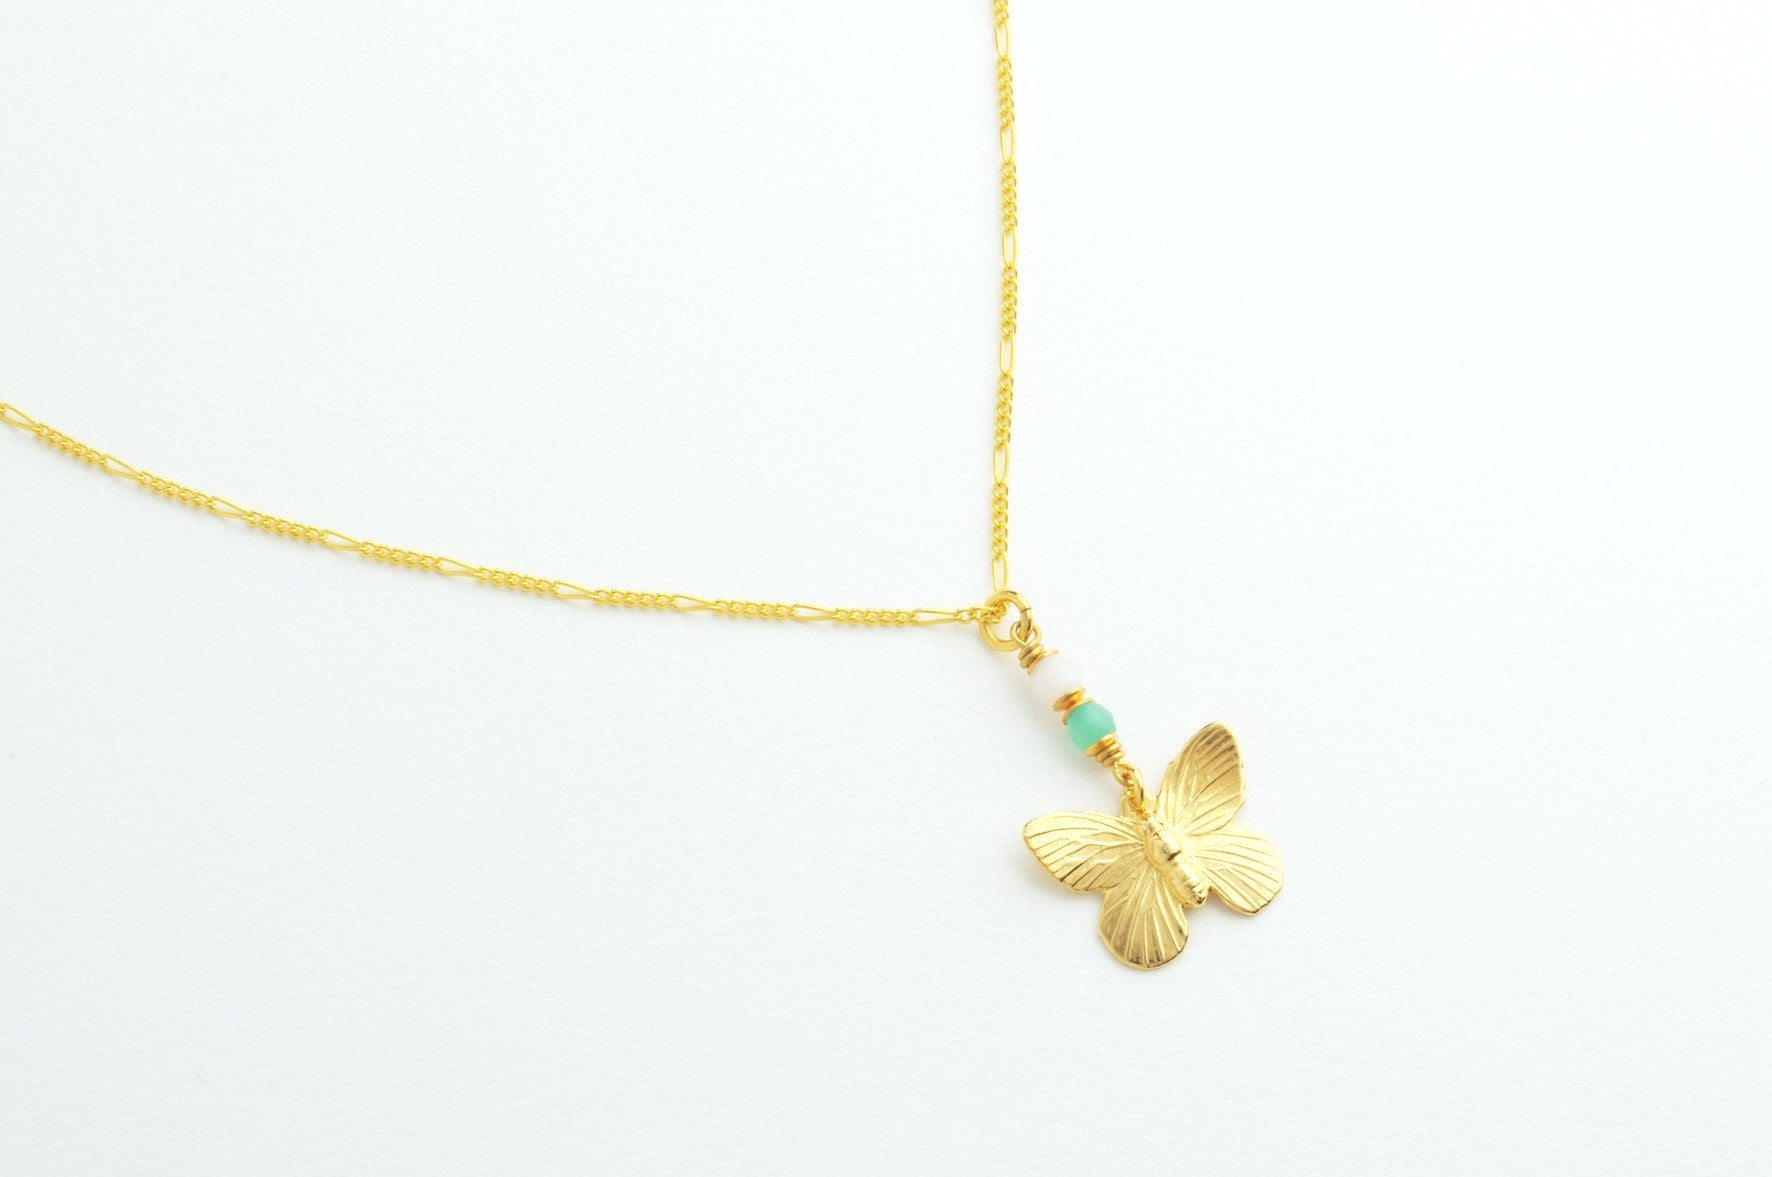 ....Kette SMALL BUTTERFLY vergoldet..Necklace SMALL BUTTERFLY gold plated....